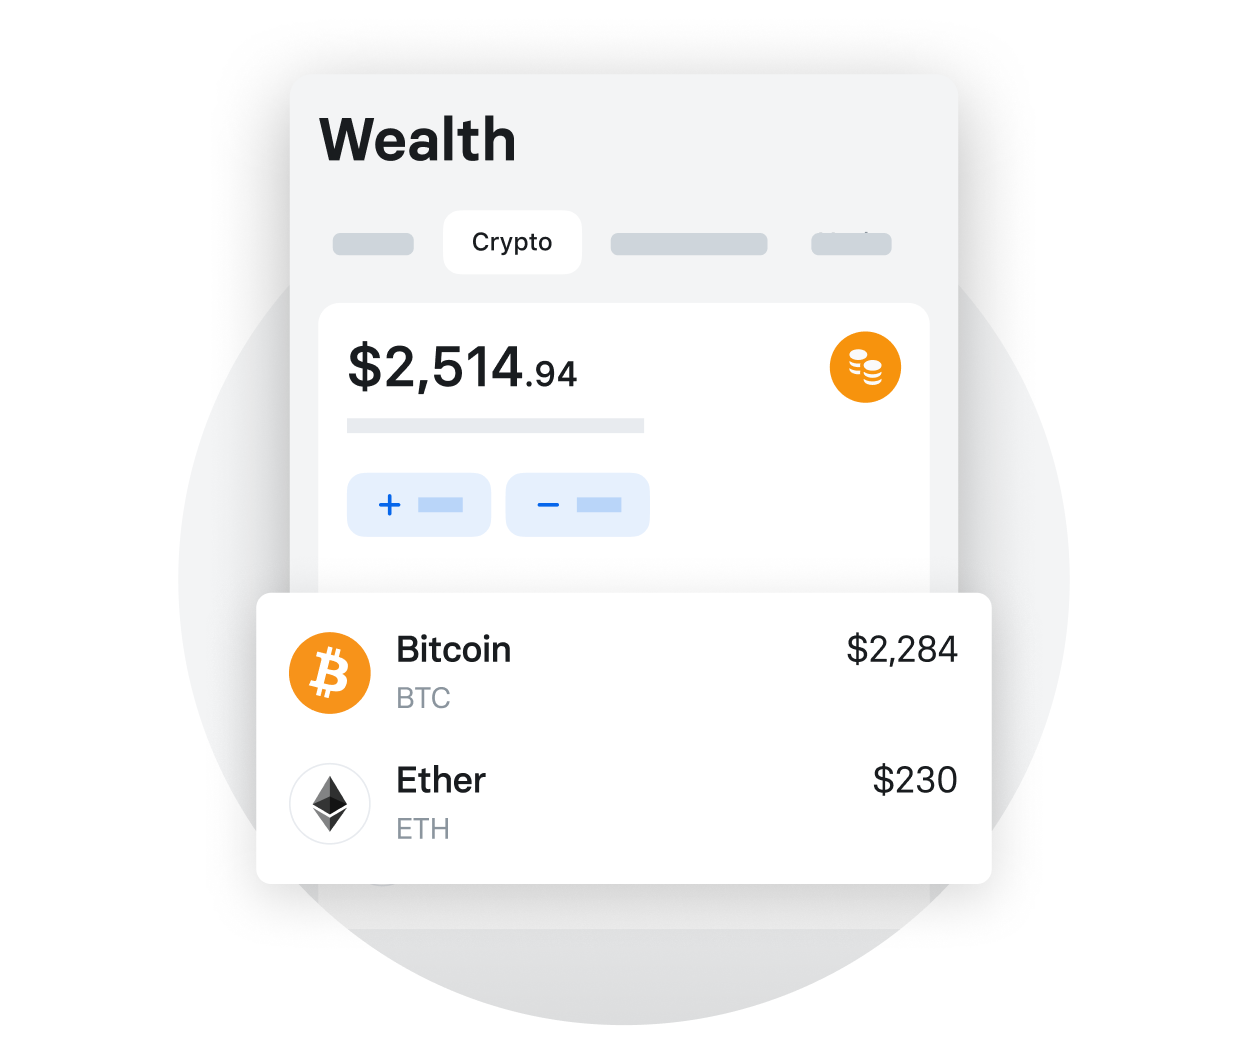 Get in on the crypto action from just $1